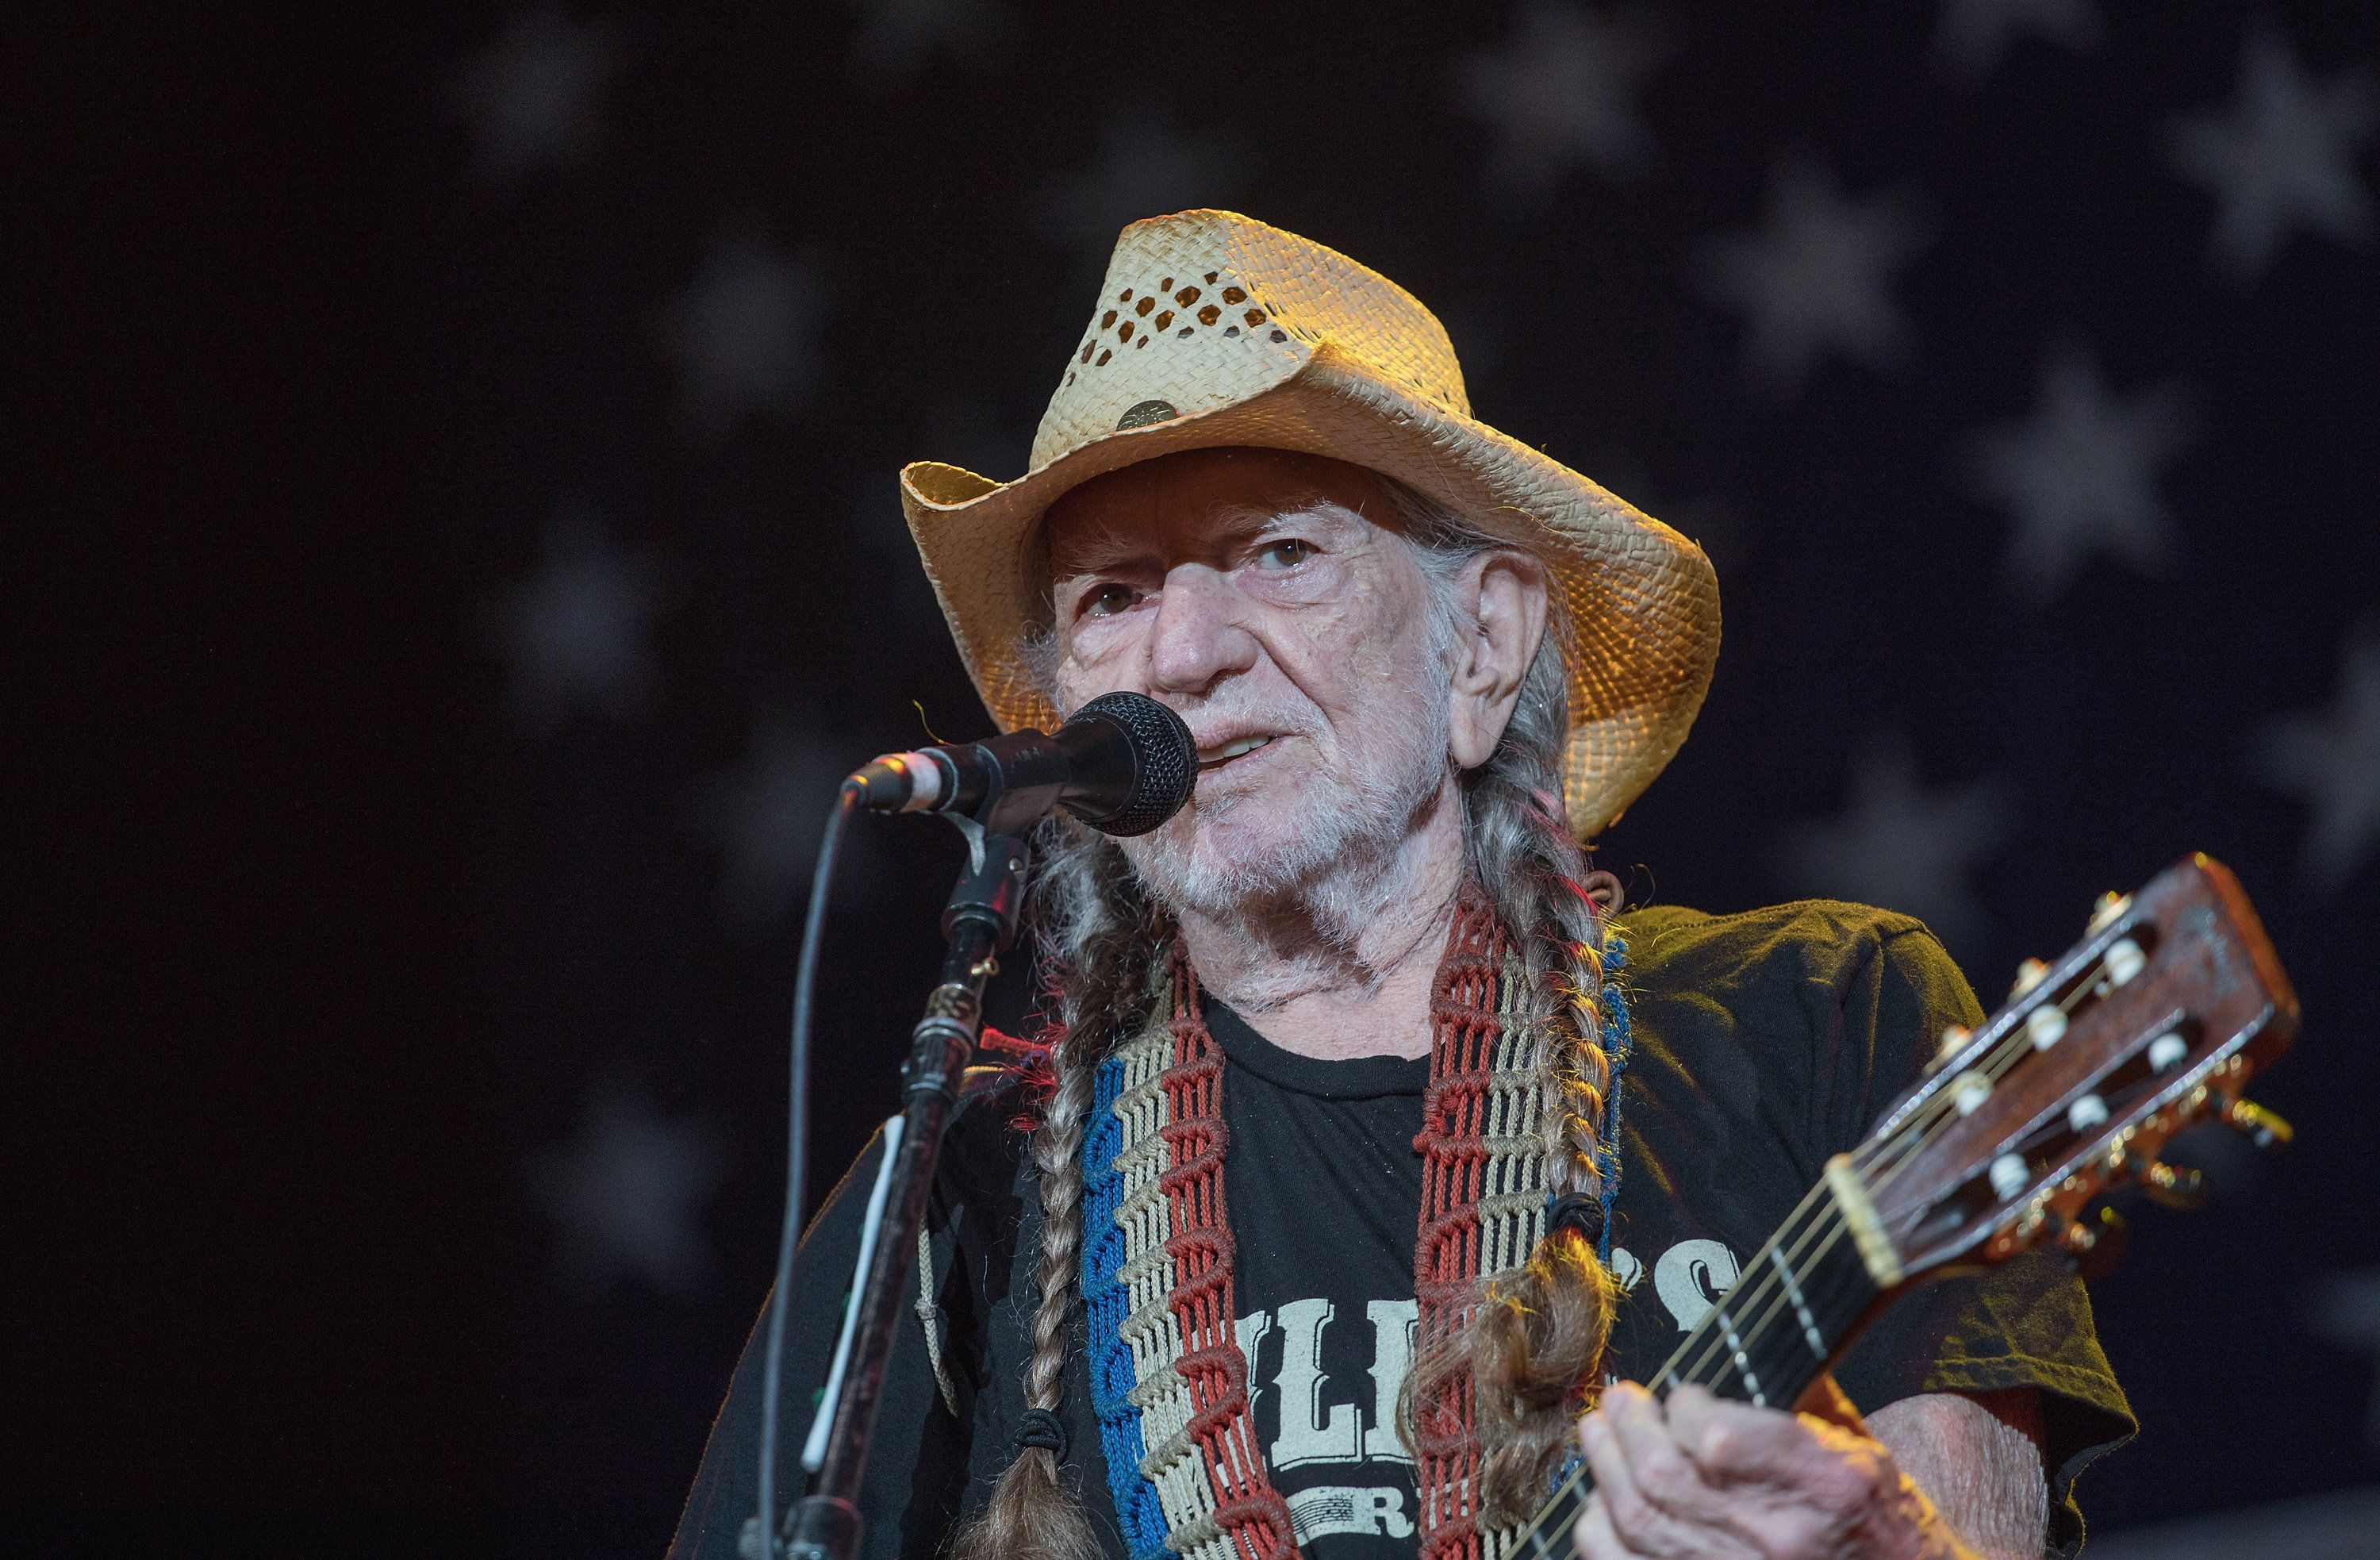 AUSTIN, TX - JULY 04:  SInger-songwriter Willie Nelson performs onstage with Willie Nelson and Family during the 45th Annual Willie Nelson 4th of July Picnic at Austin360 Amphitheater on July 4, 2018 in Austin, Texas.  (Photo by Rick Kern/WireImage)